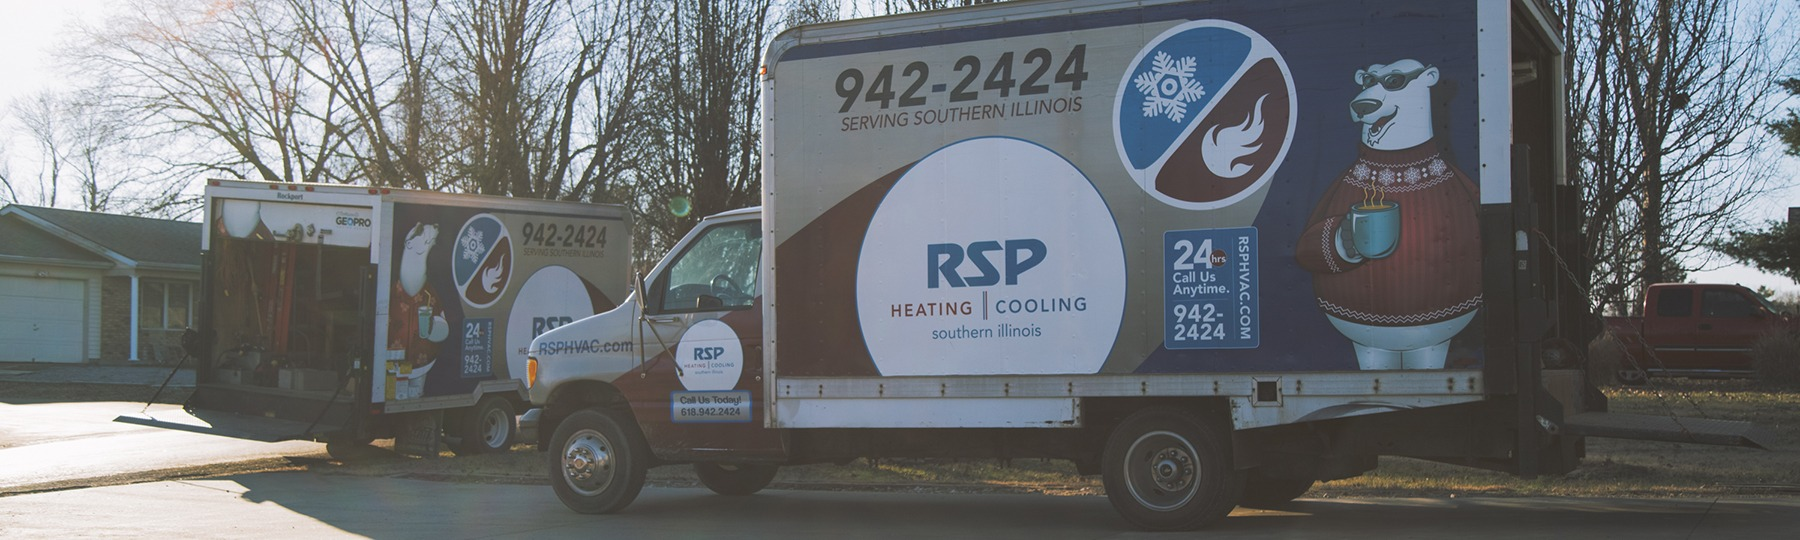 RSP heating and cooling near me - RSP HVAC